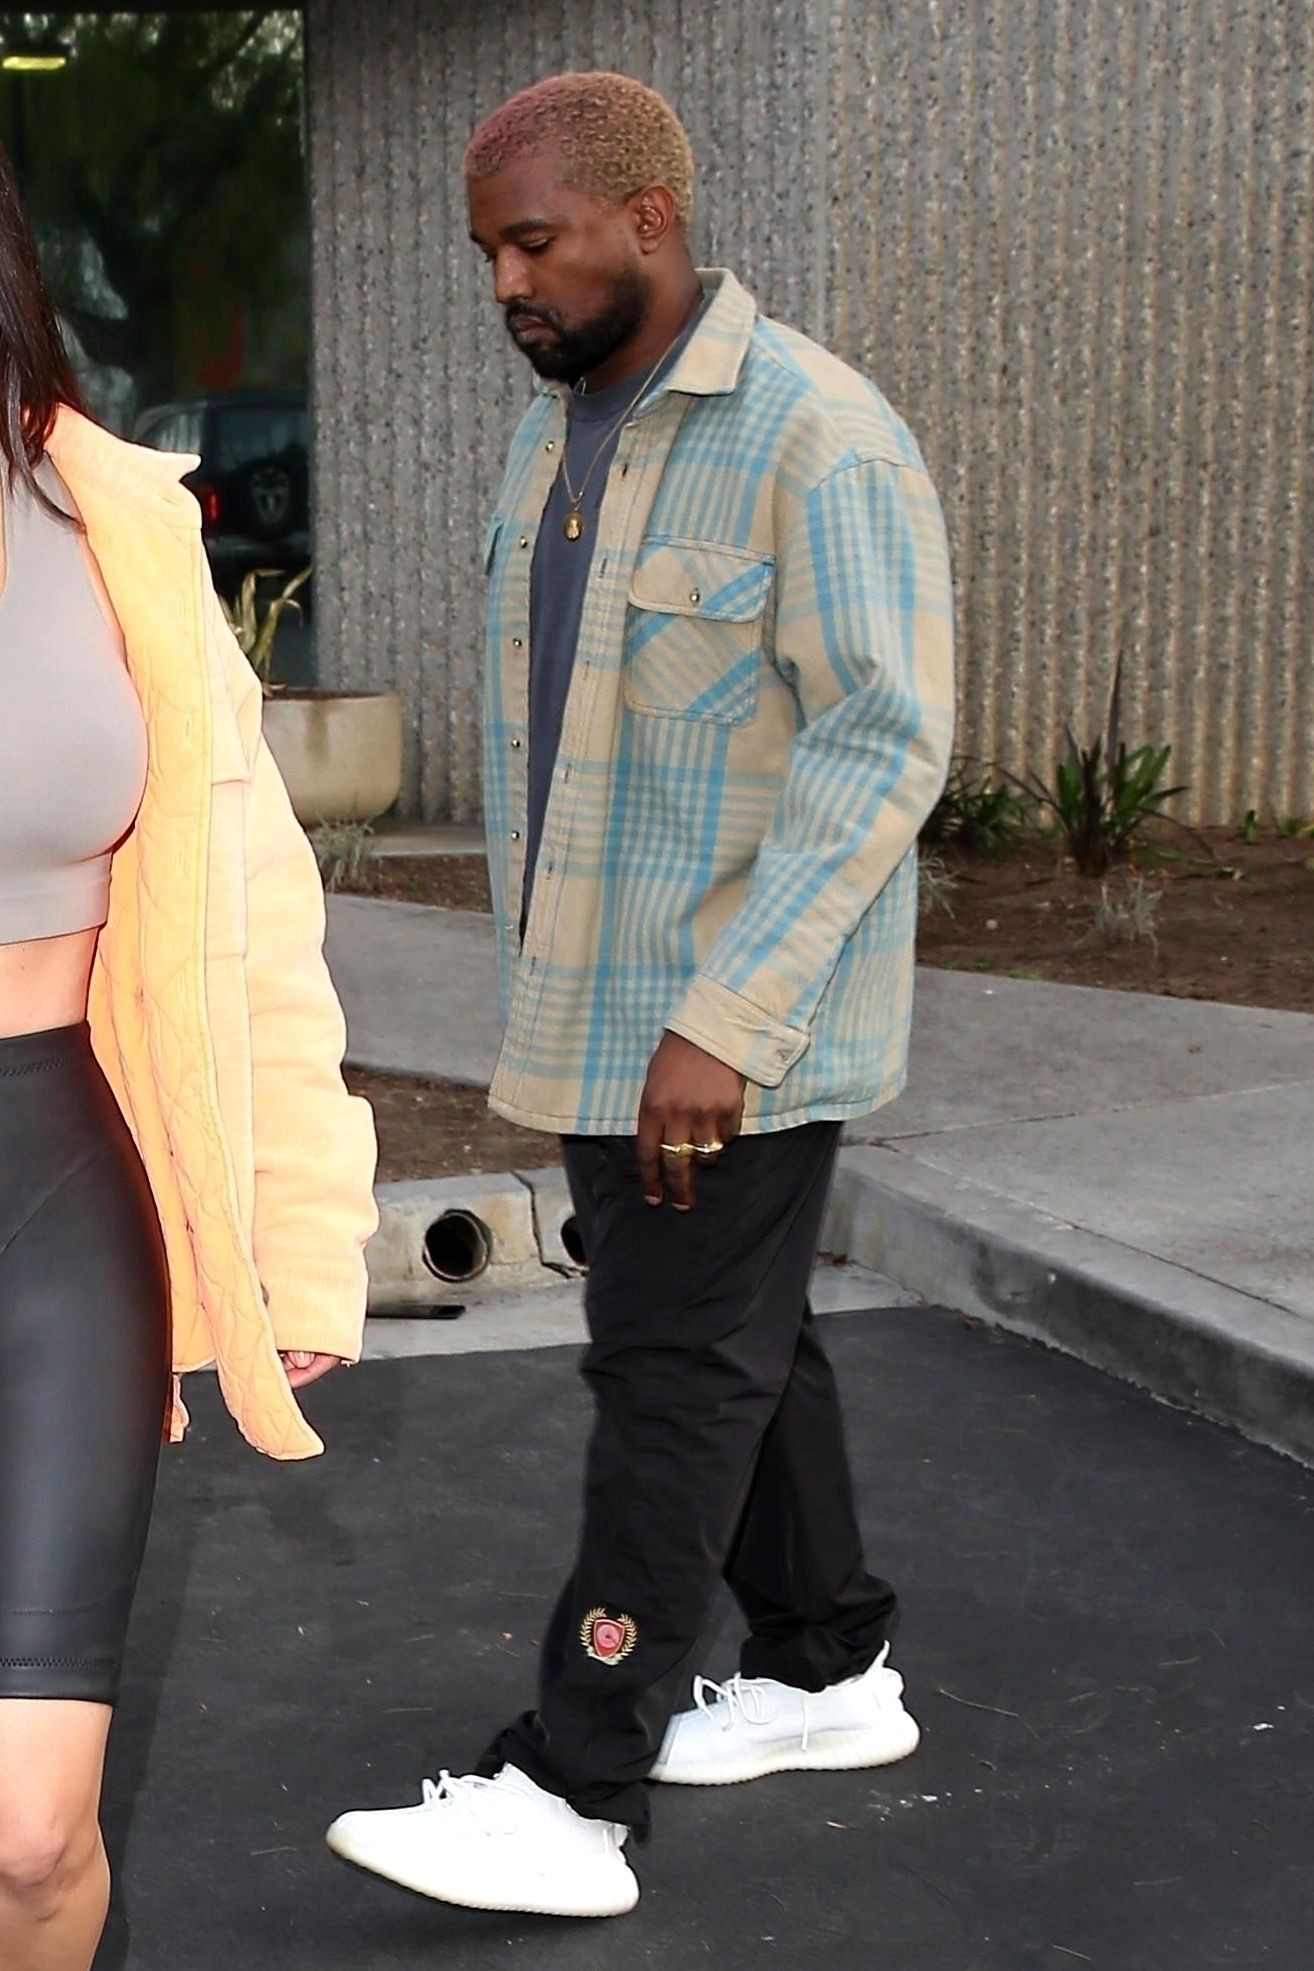 Kanye West Leaving The Office On Looklive Kanye West Outfits Kanye West Style Kanye West